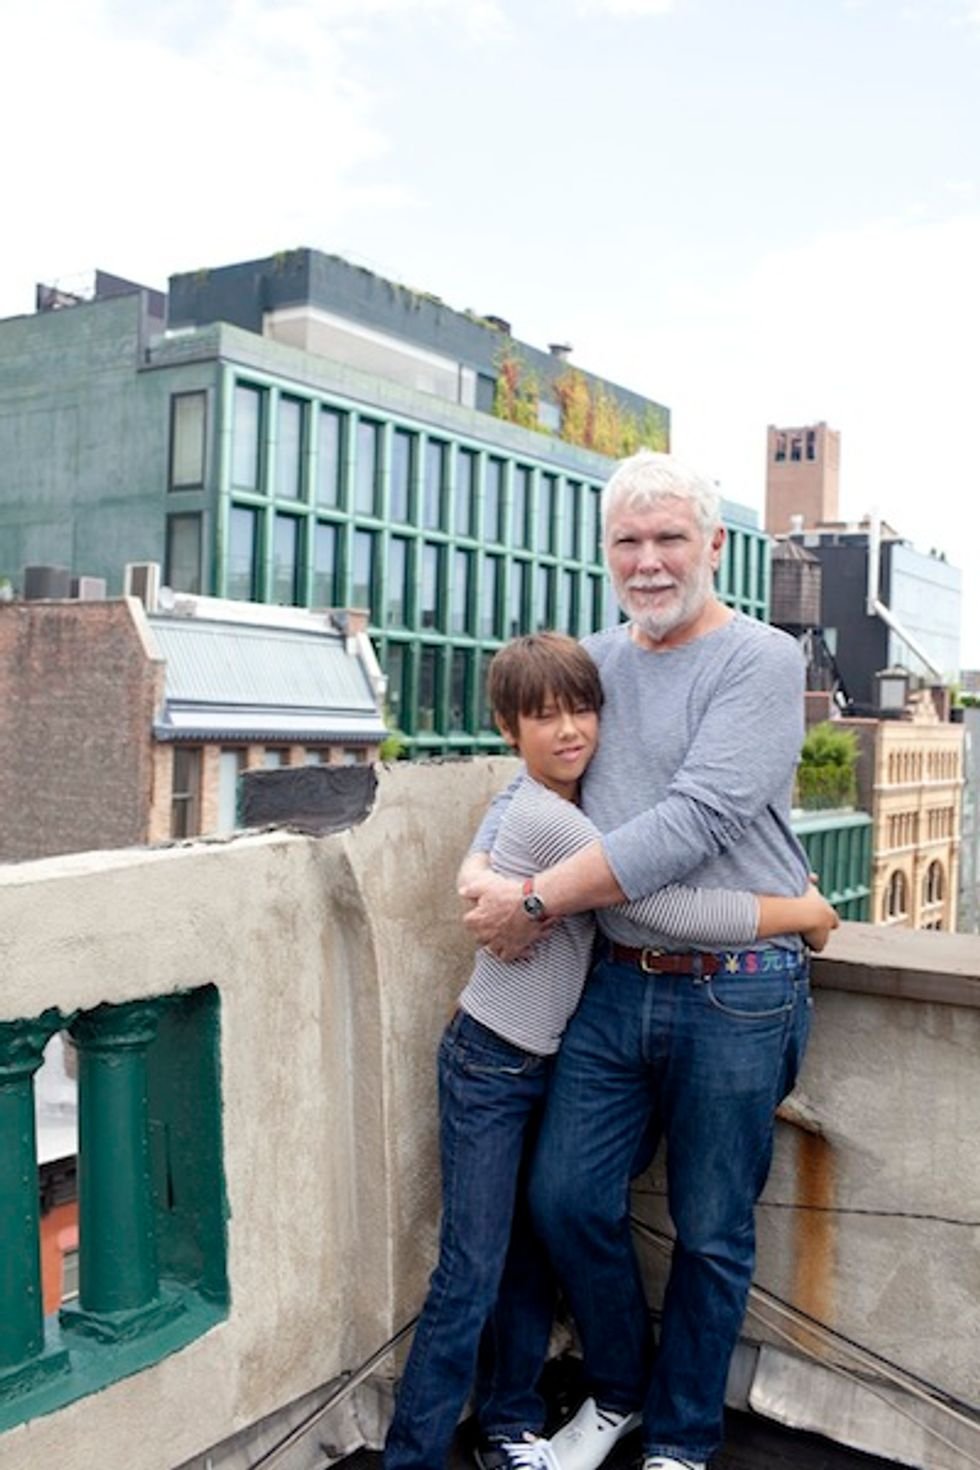 More with Glenn O'Brien and His 11-Year-Old Son Oscar